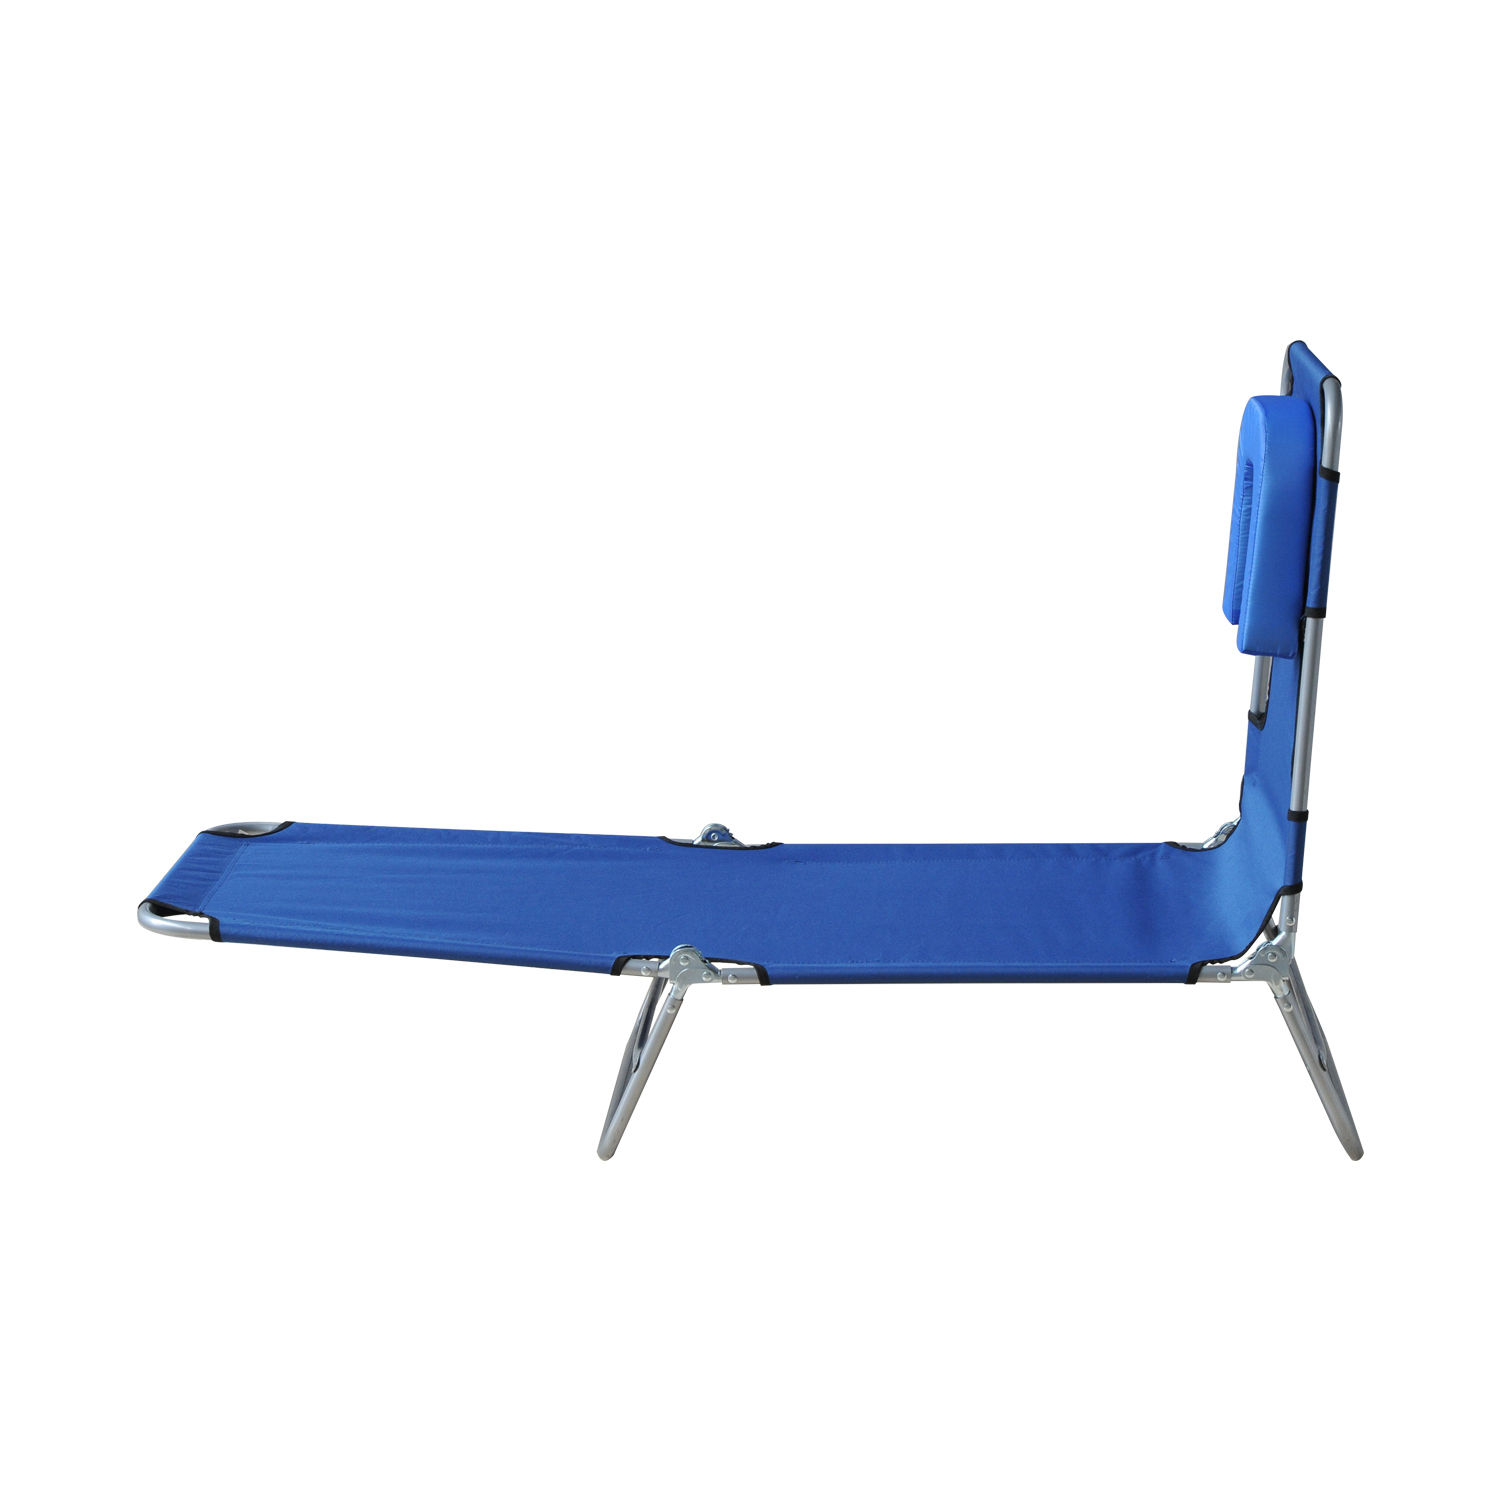 Outsunny Travel Sunbed Folding Chaise Lounge Adjustable